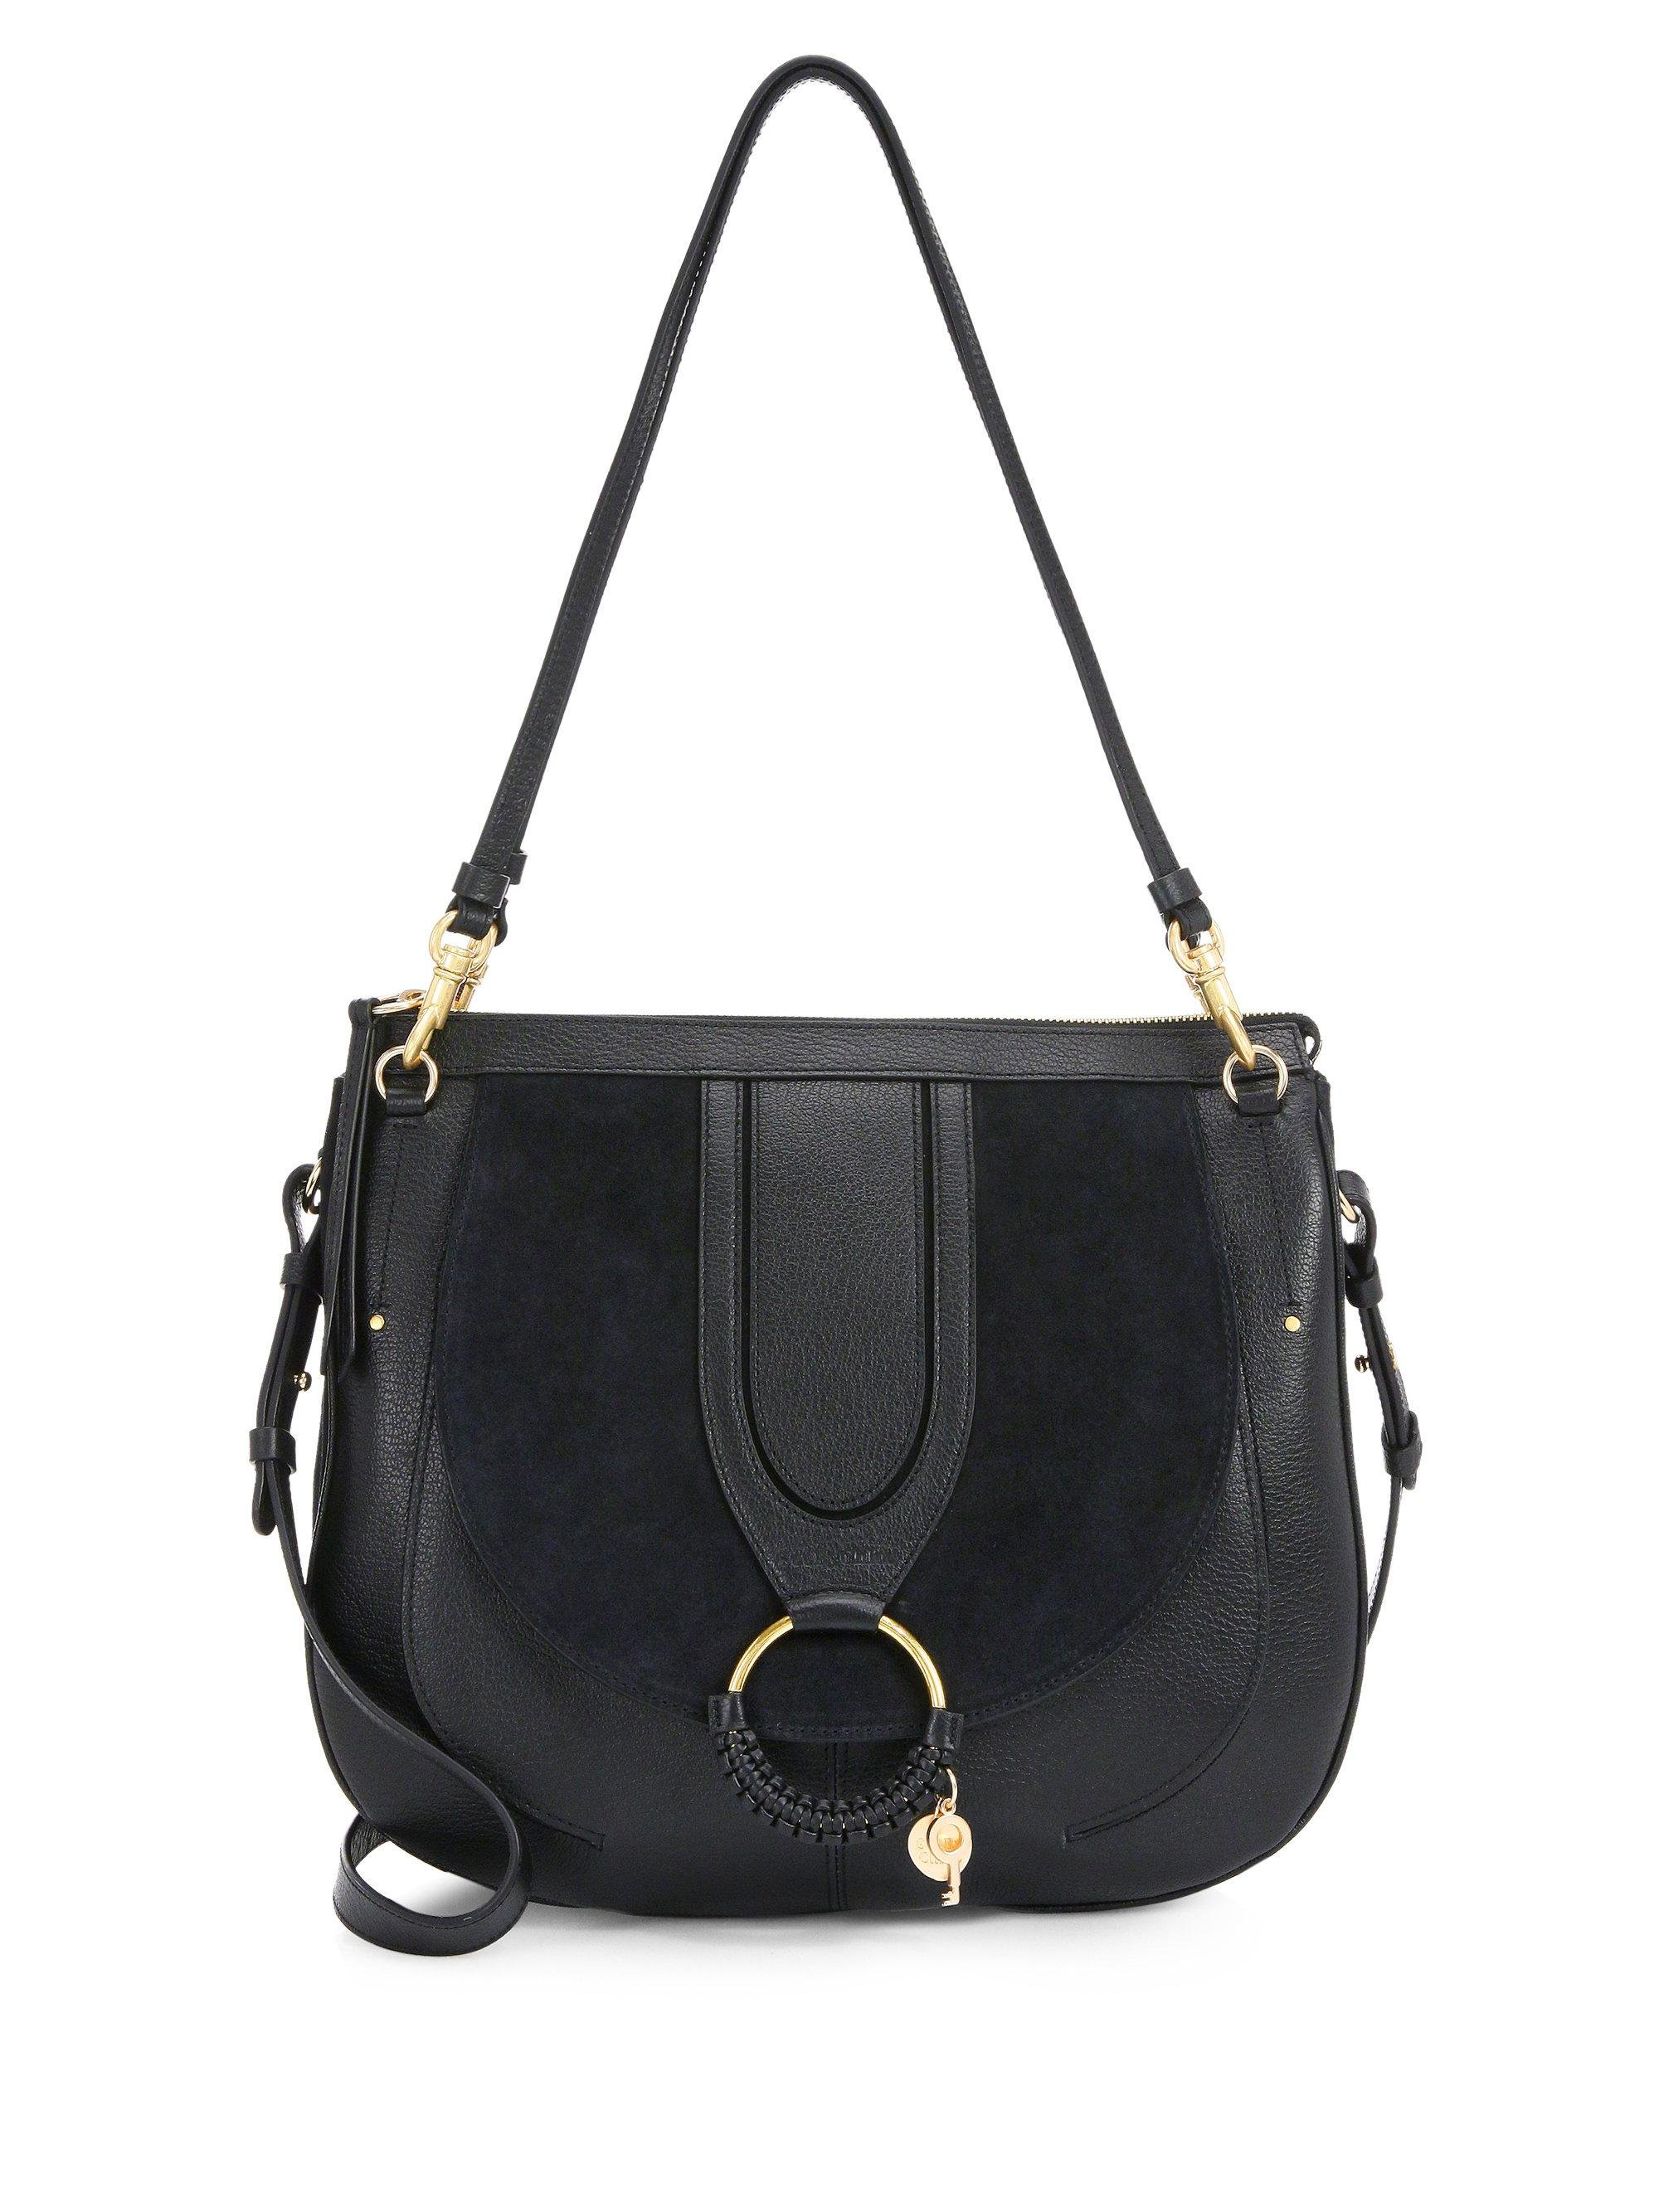 3f4b5247dc See By Chloé Hana Suede Leather Tote in Black - Lyst